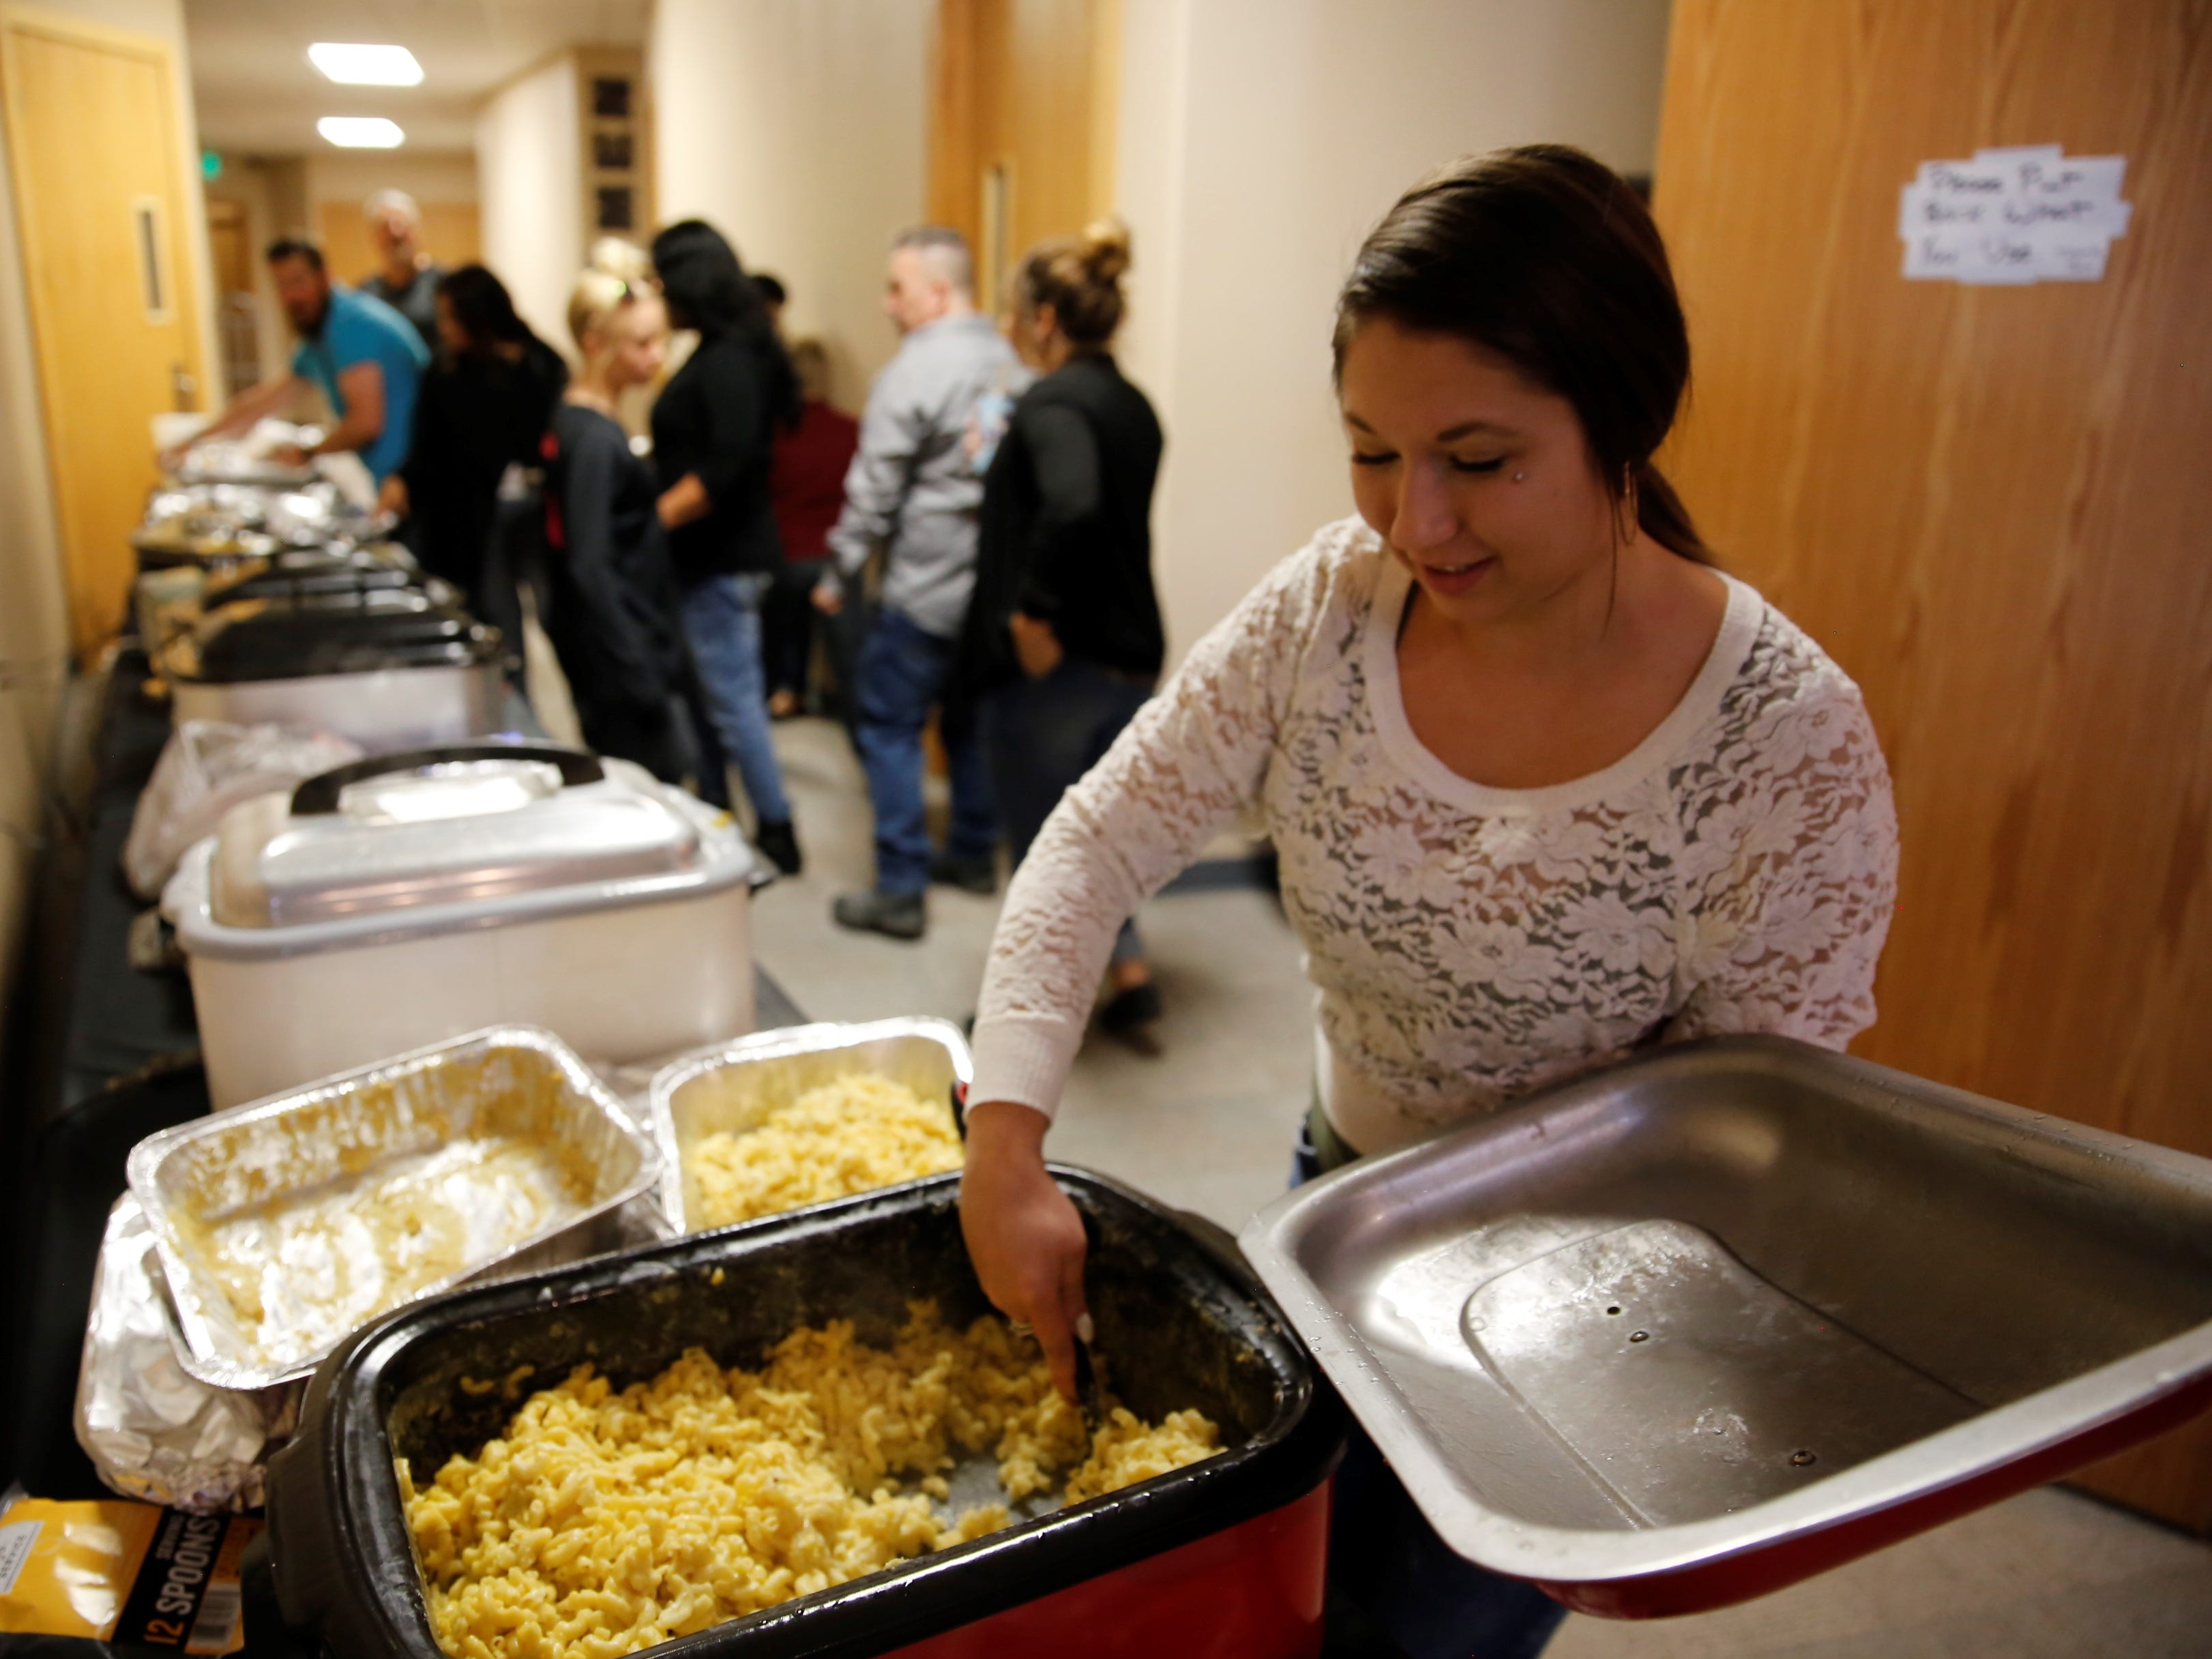 Maleia Osborne dishes out macaroni and cheese to be served during a Thanksgiving meal Tuesday afternoon at Oasis Church in Farmington. The San Juan County Juvenile Services program, Desert View Family Counseling and Cottonwood Clinical Services hosted the meal.